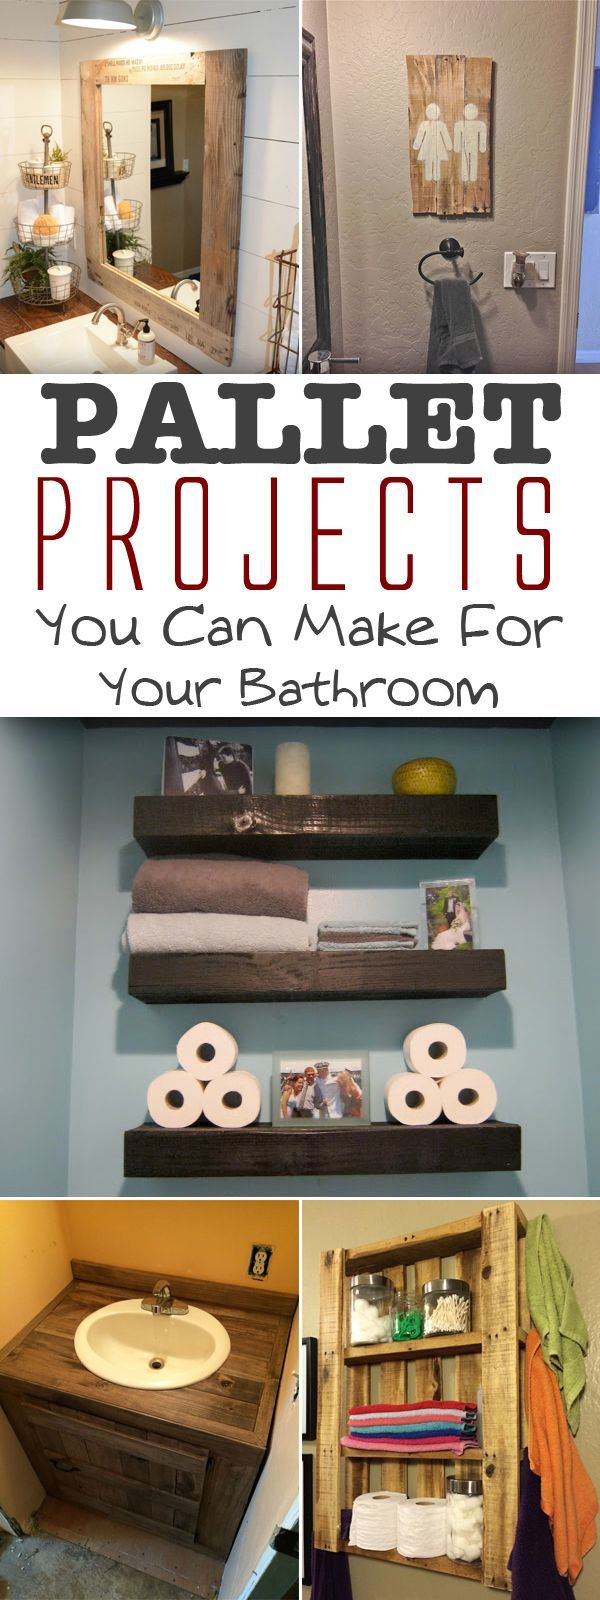 10 Pallet Projects You Can Make For